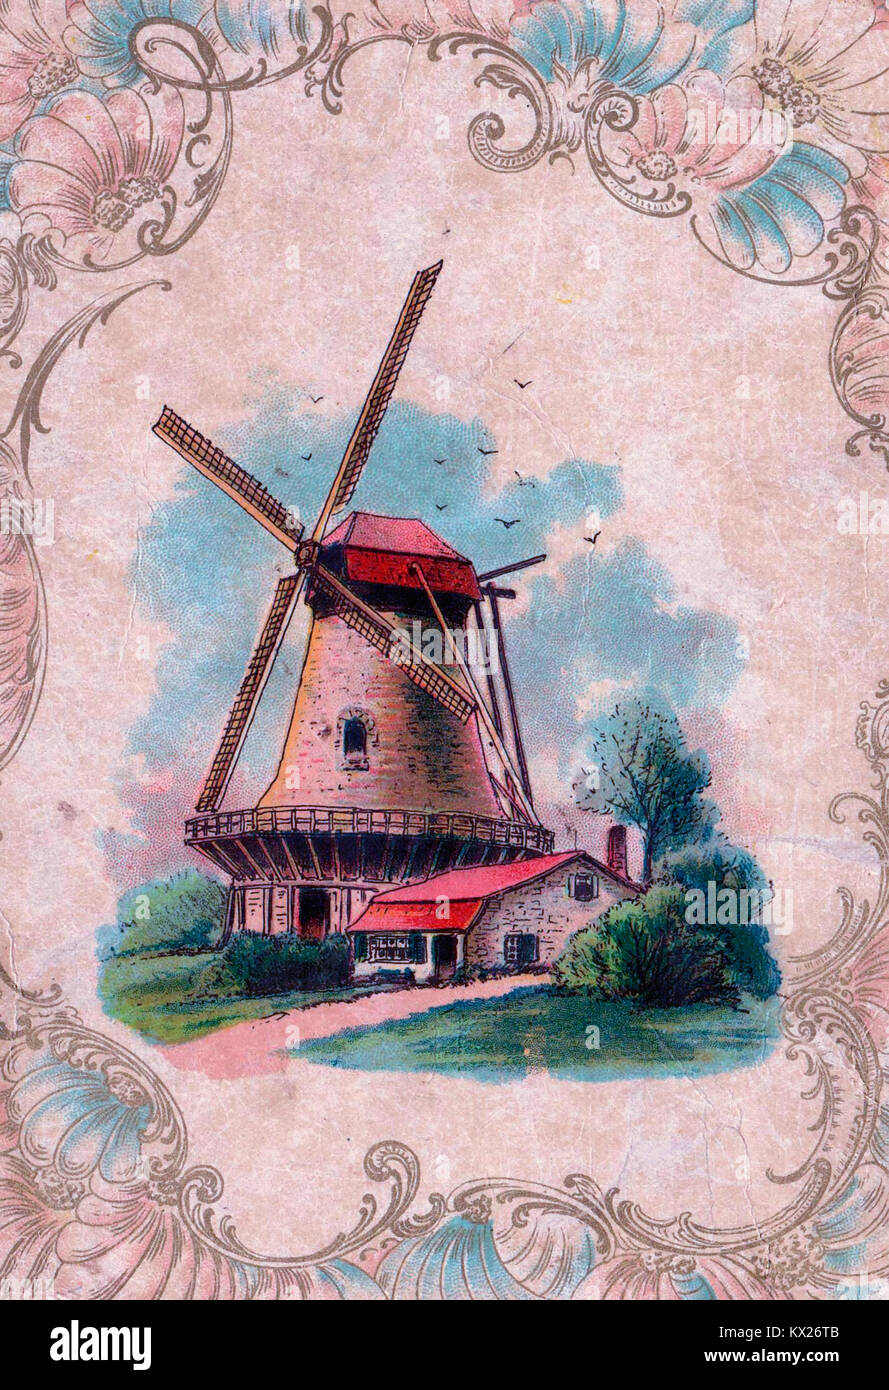 Old fashioned windmill - Stock Image